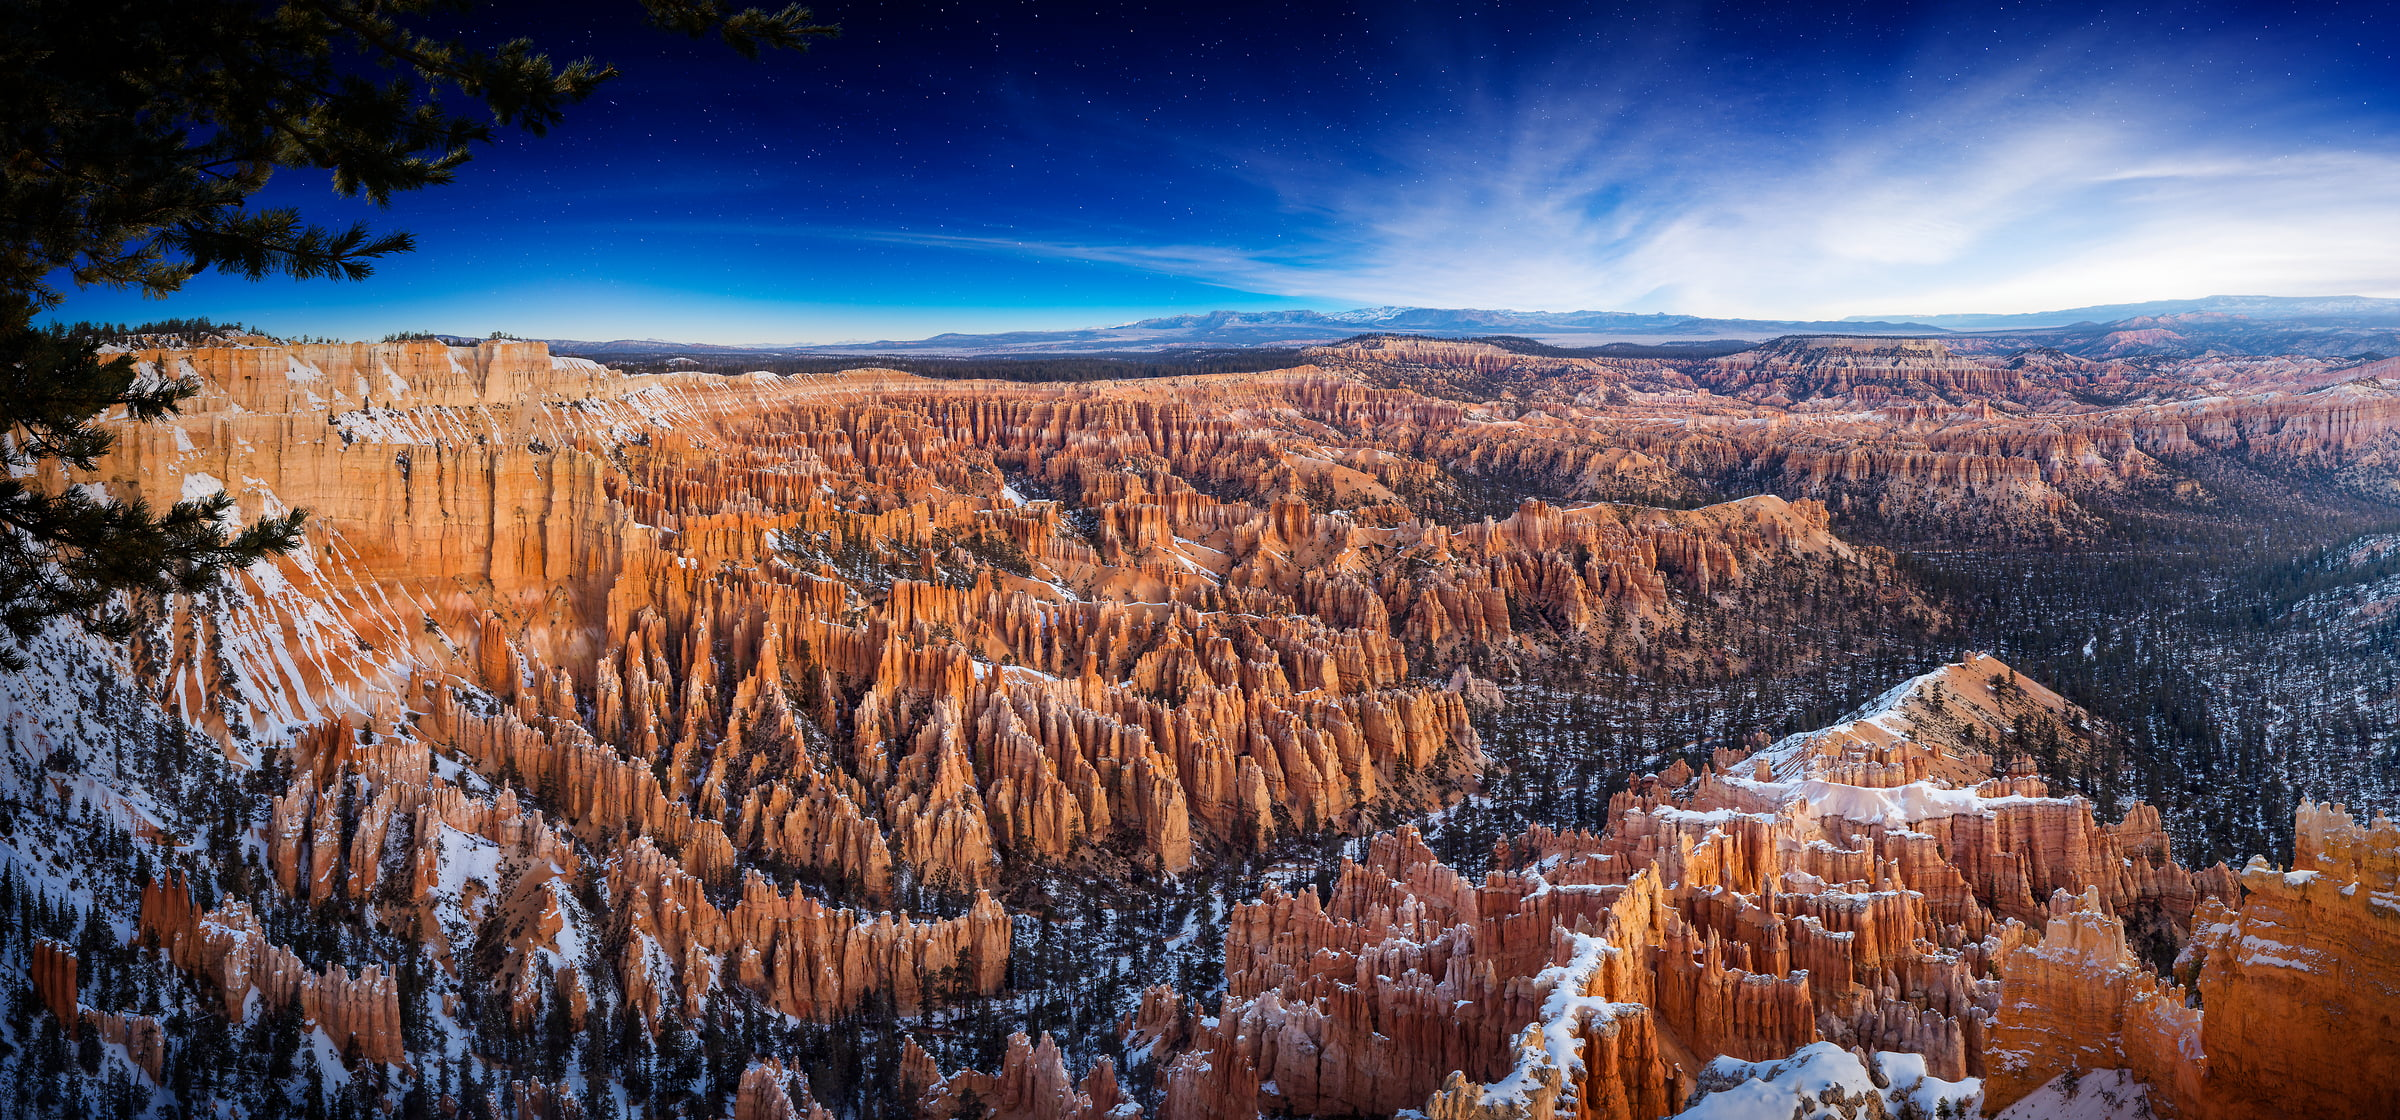 236 megapixels! A very high resolution, large-format VAST photo of Bryce Canyon; fine art landscape photograph created by Nick Pedersen in Bryce Canyon National Park, Utah